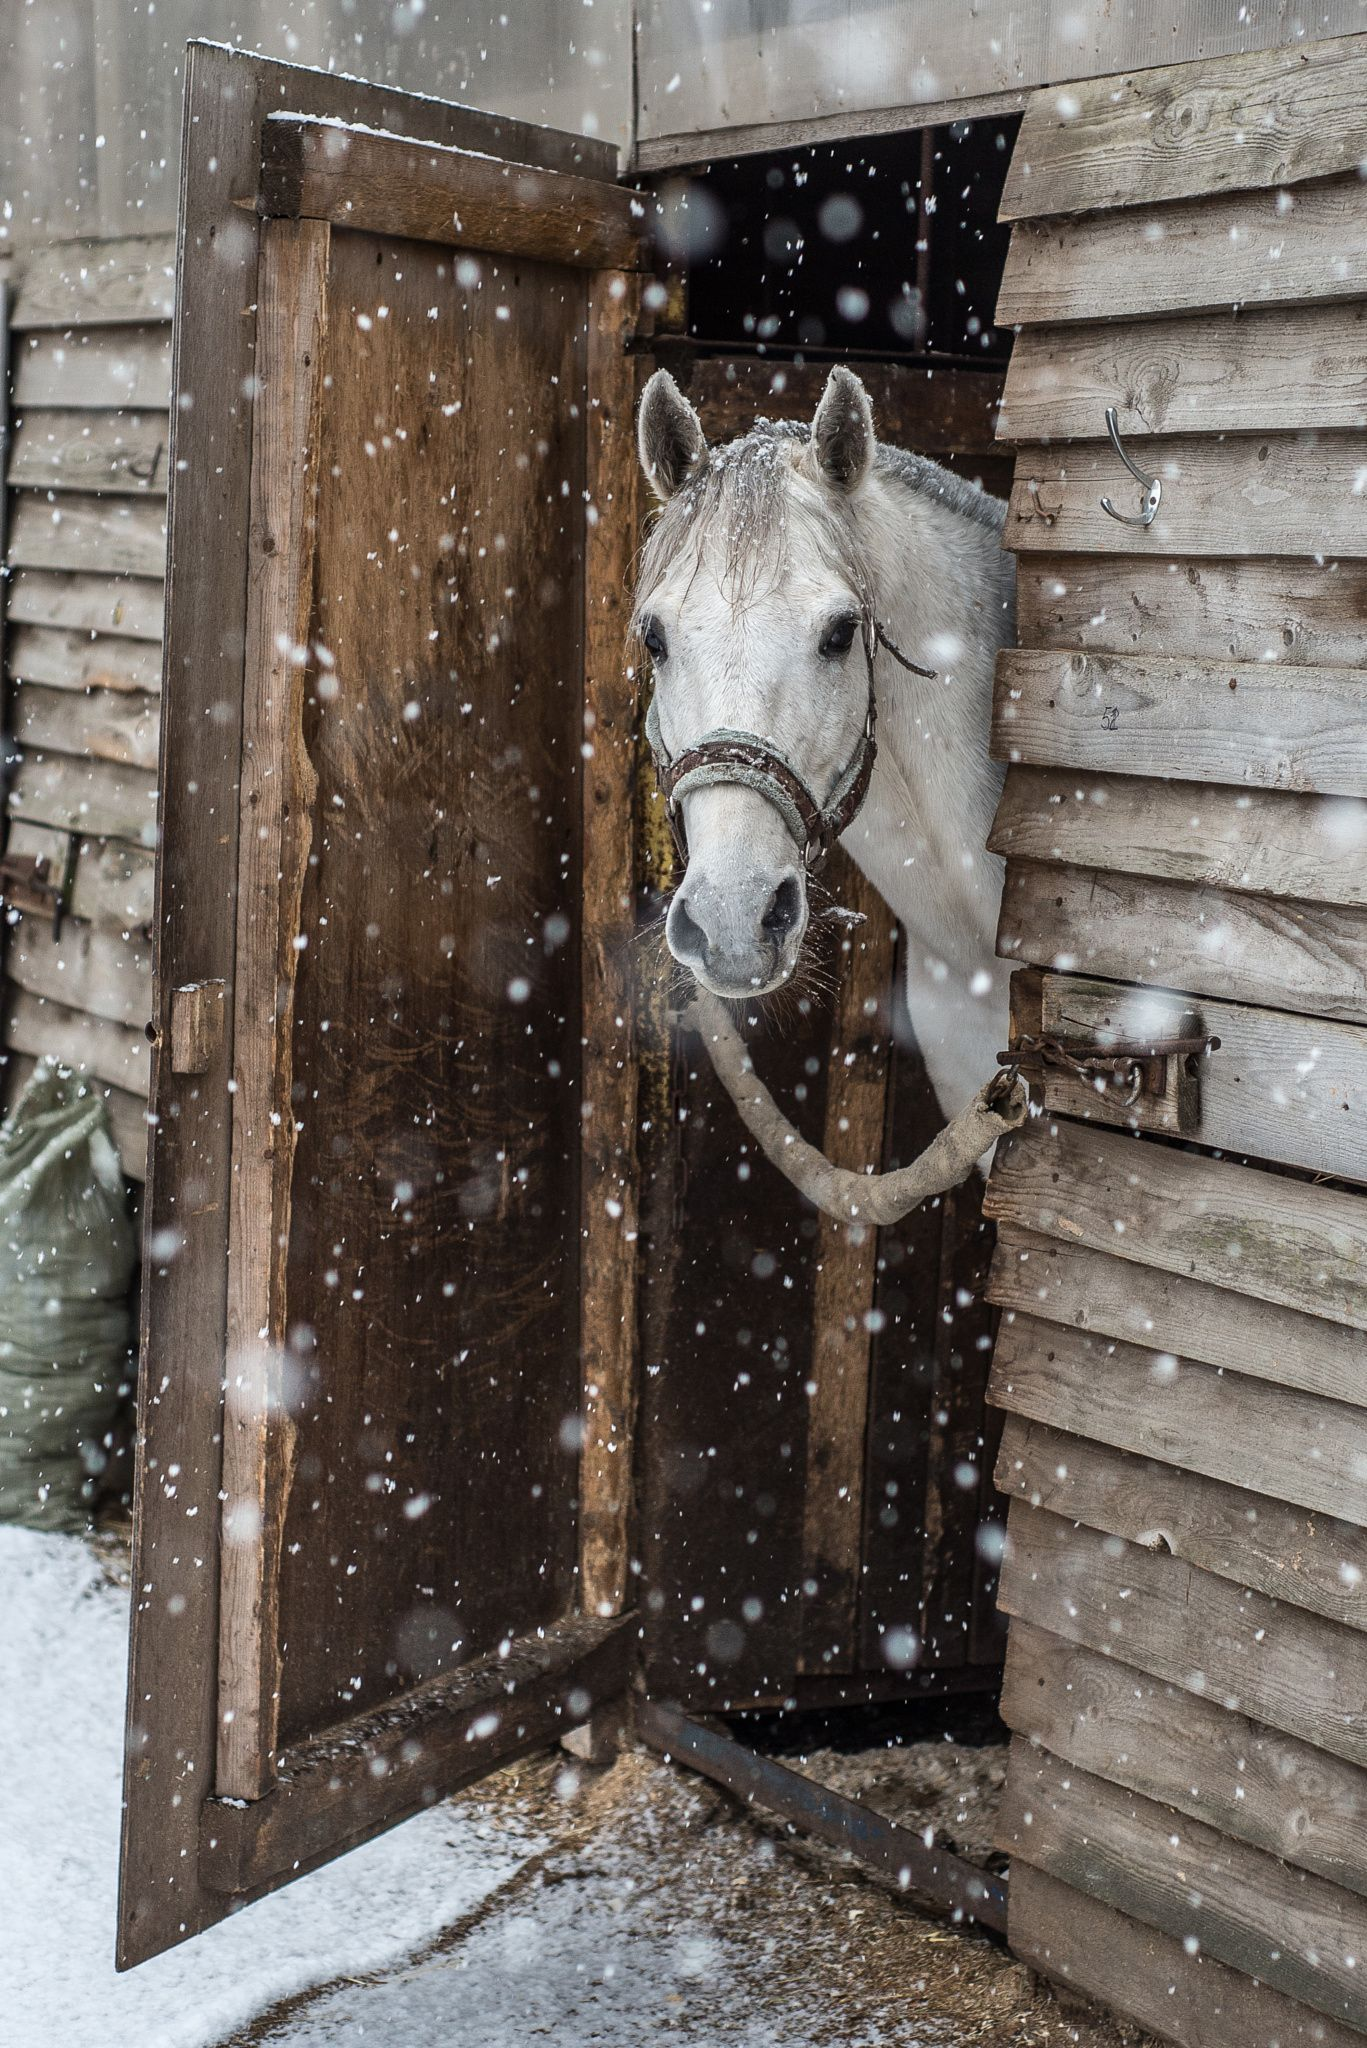 white horse in the snow by oleg filippov